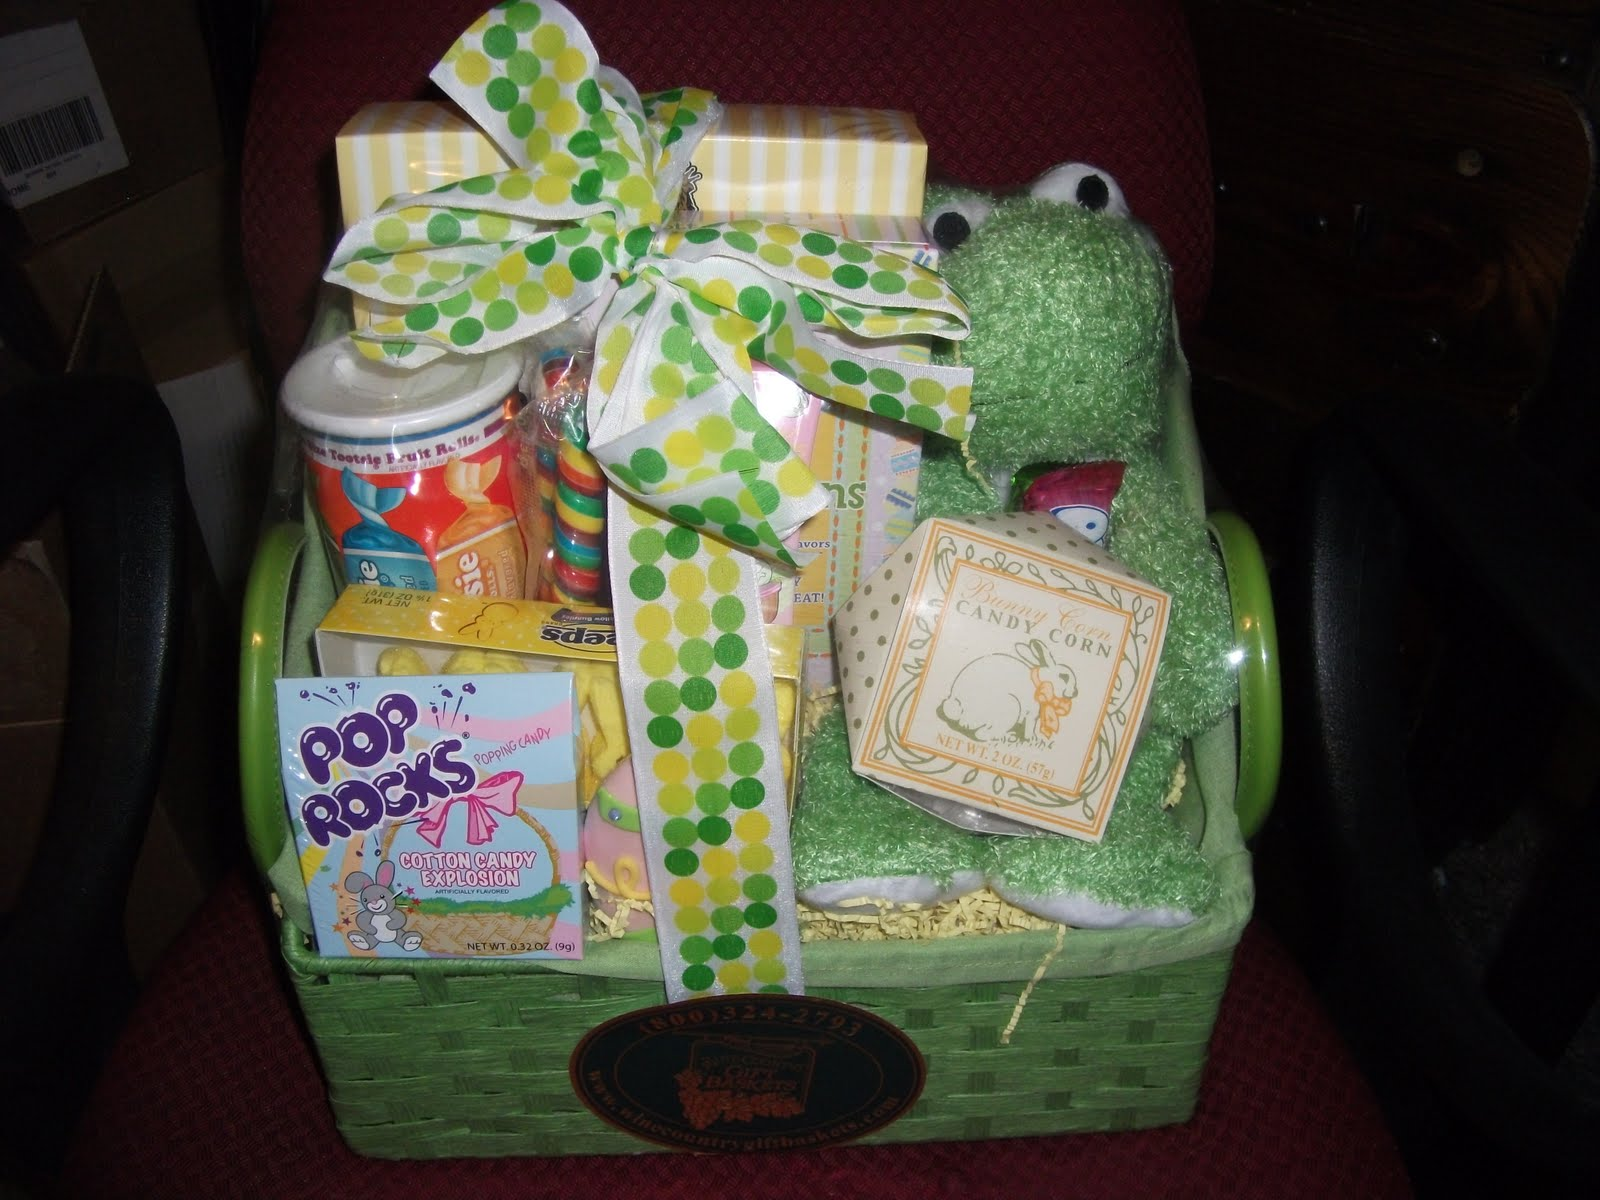 Heck of a bunch wine country gift baskets easter basket review wine country gift baskets offers a whole array of easter gift baskets they also have a fine selection of value priced gift baskets and gift towers negle Image collections